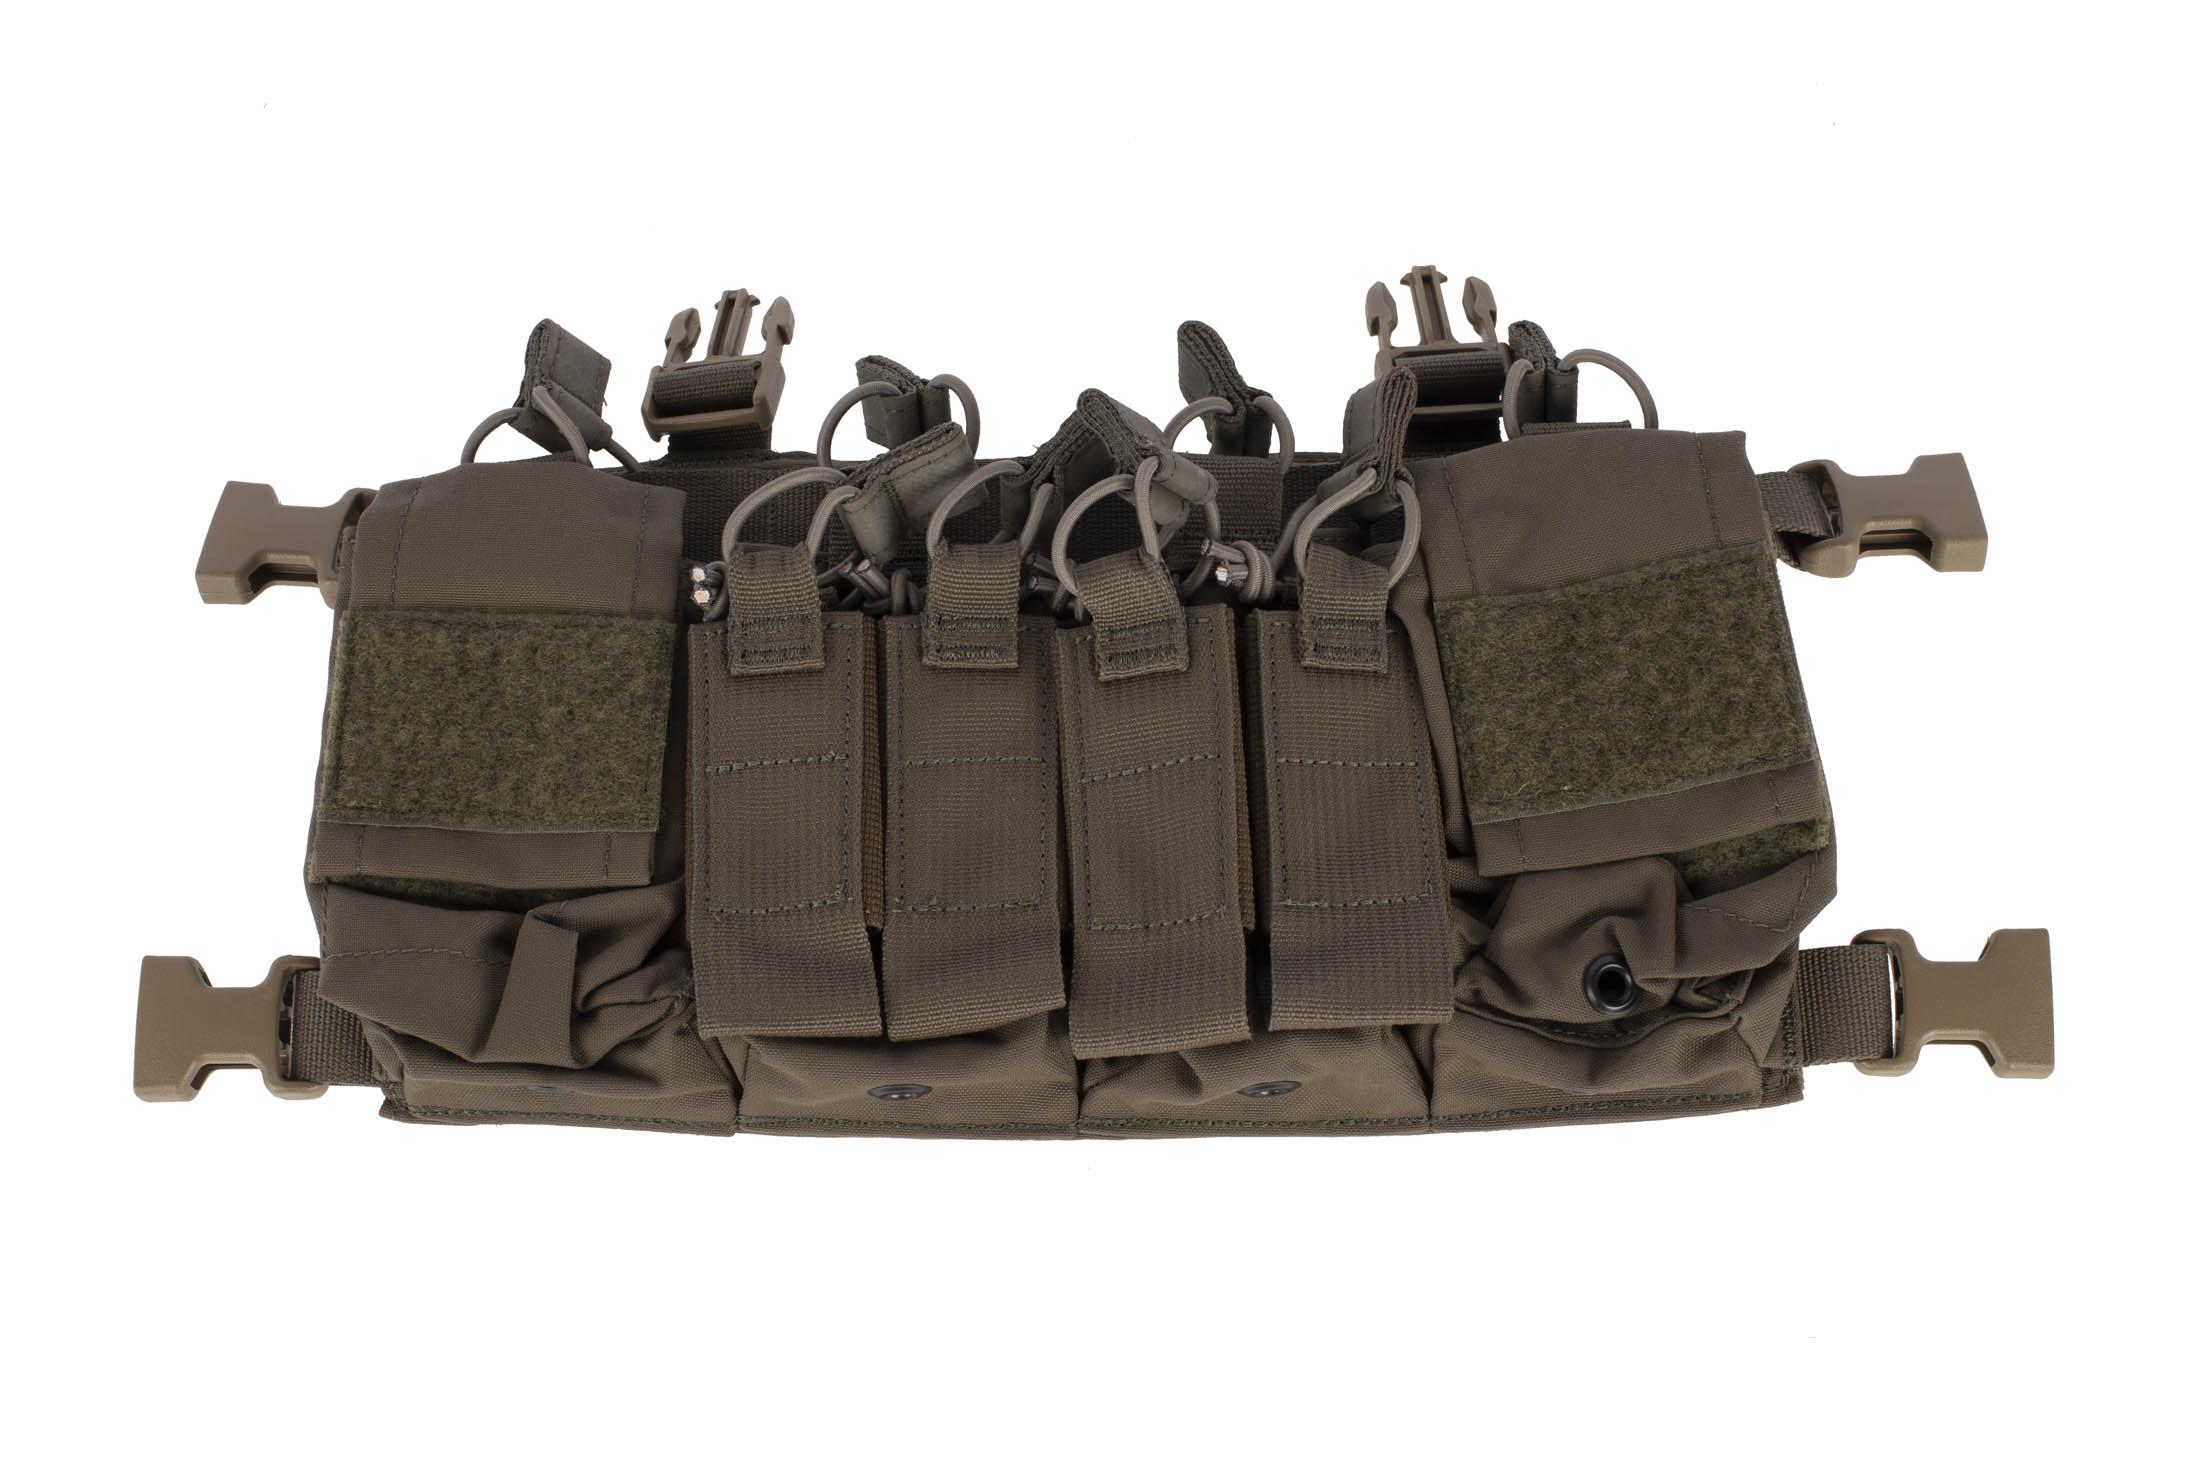 Haley Strategic D3CRX chest rig in ranger green includes twin double mag pouches and four multi-mission pouches